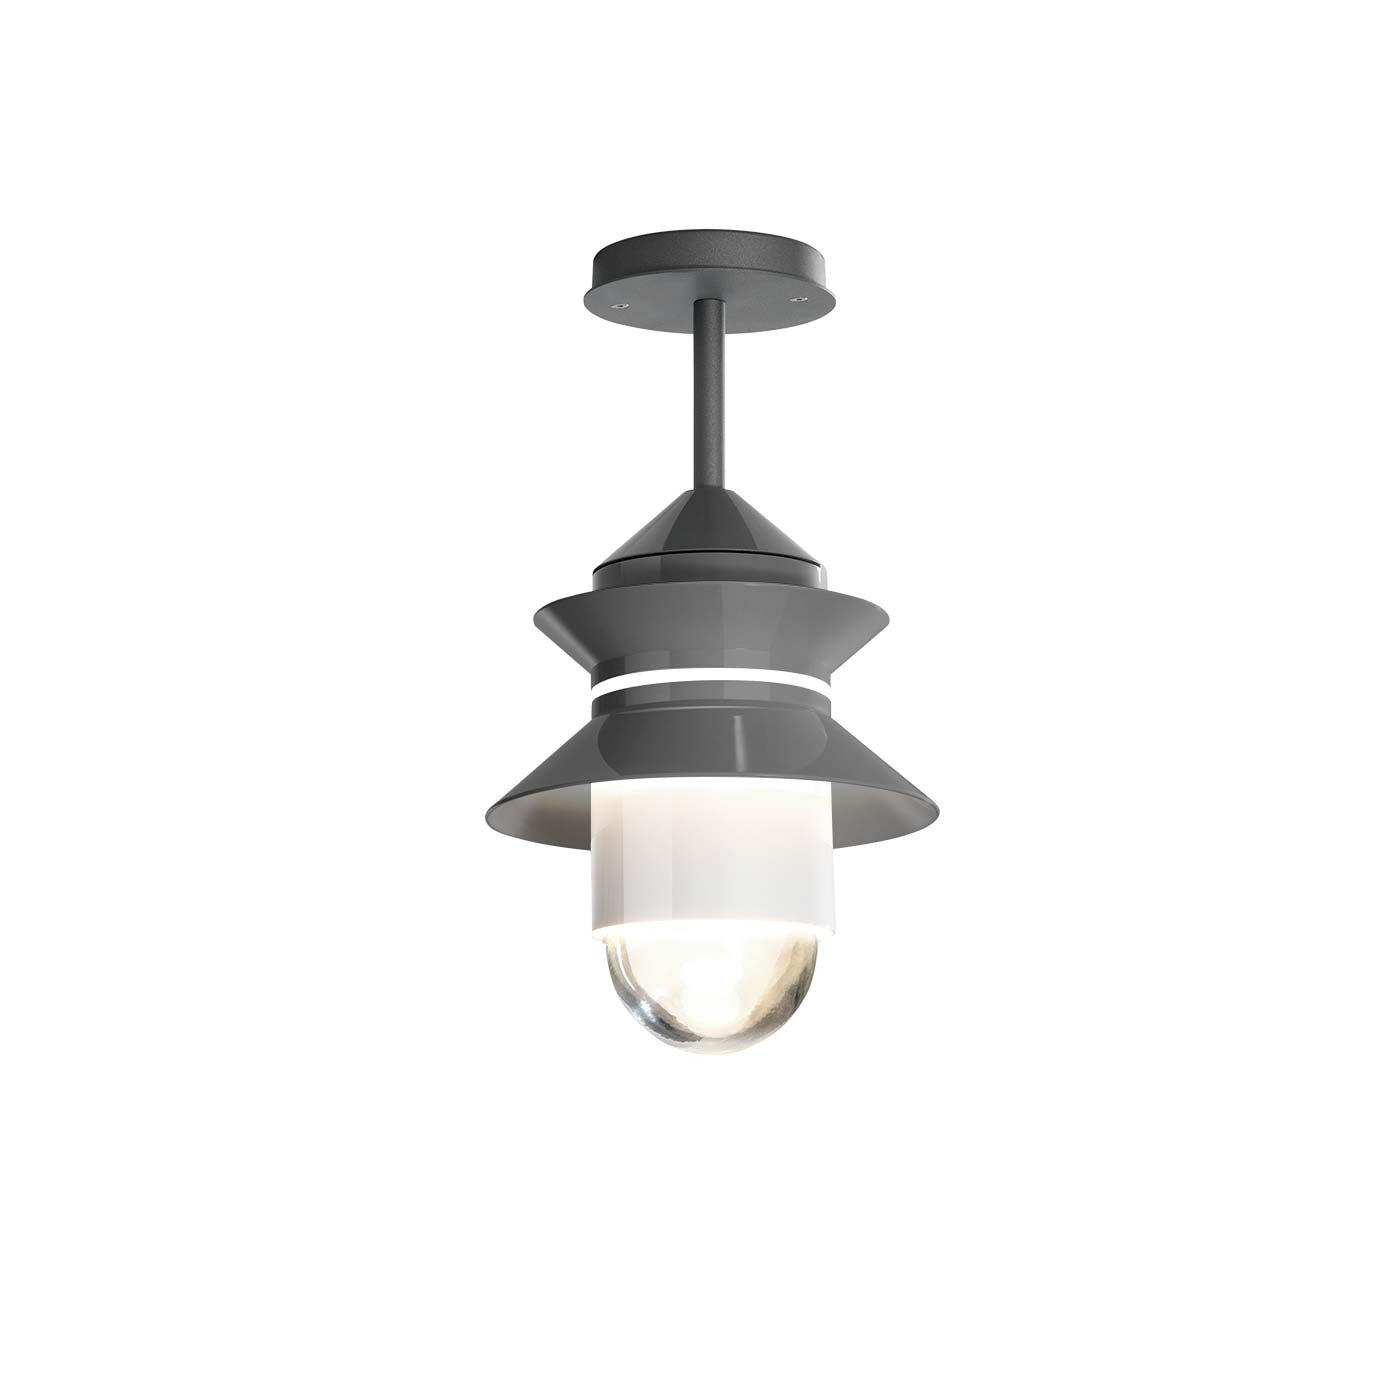 Marset Santorini Ceiling Light